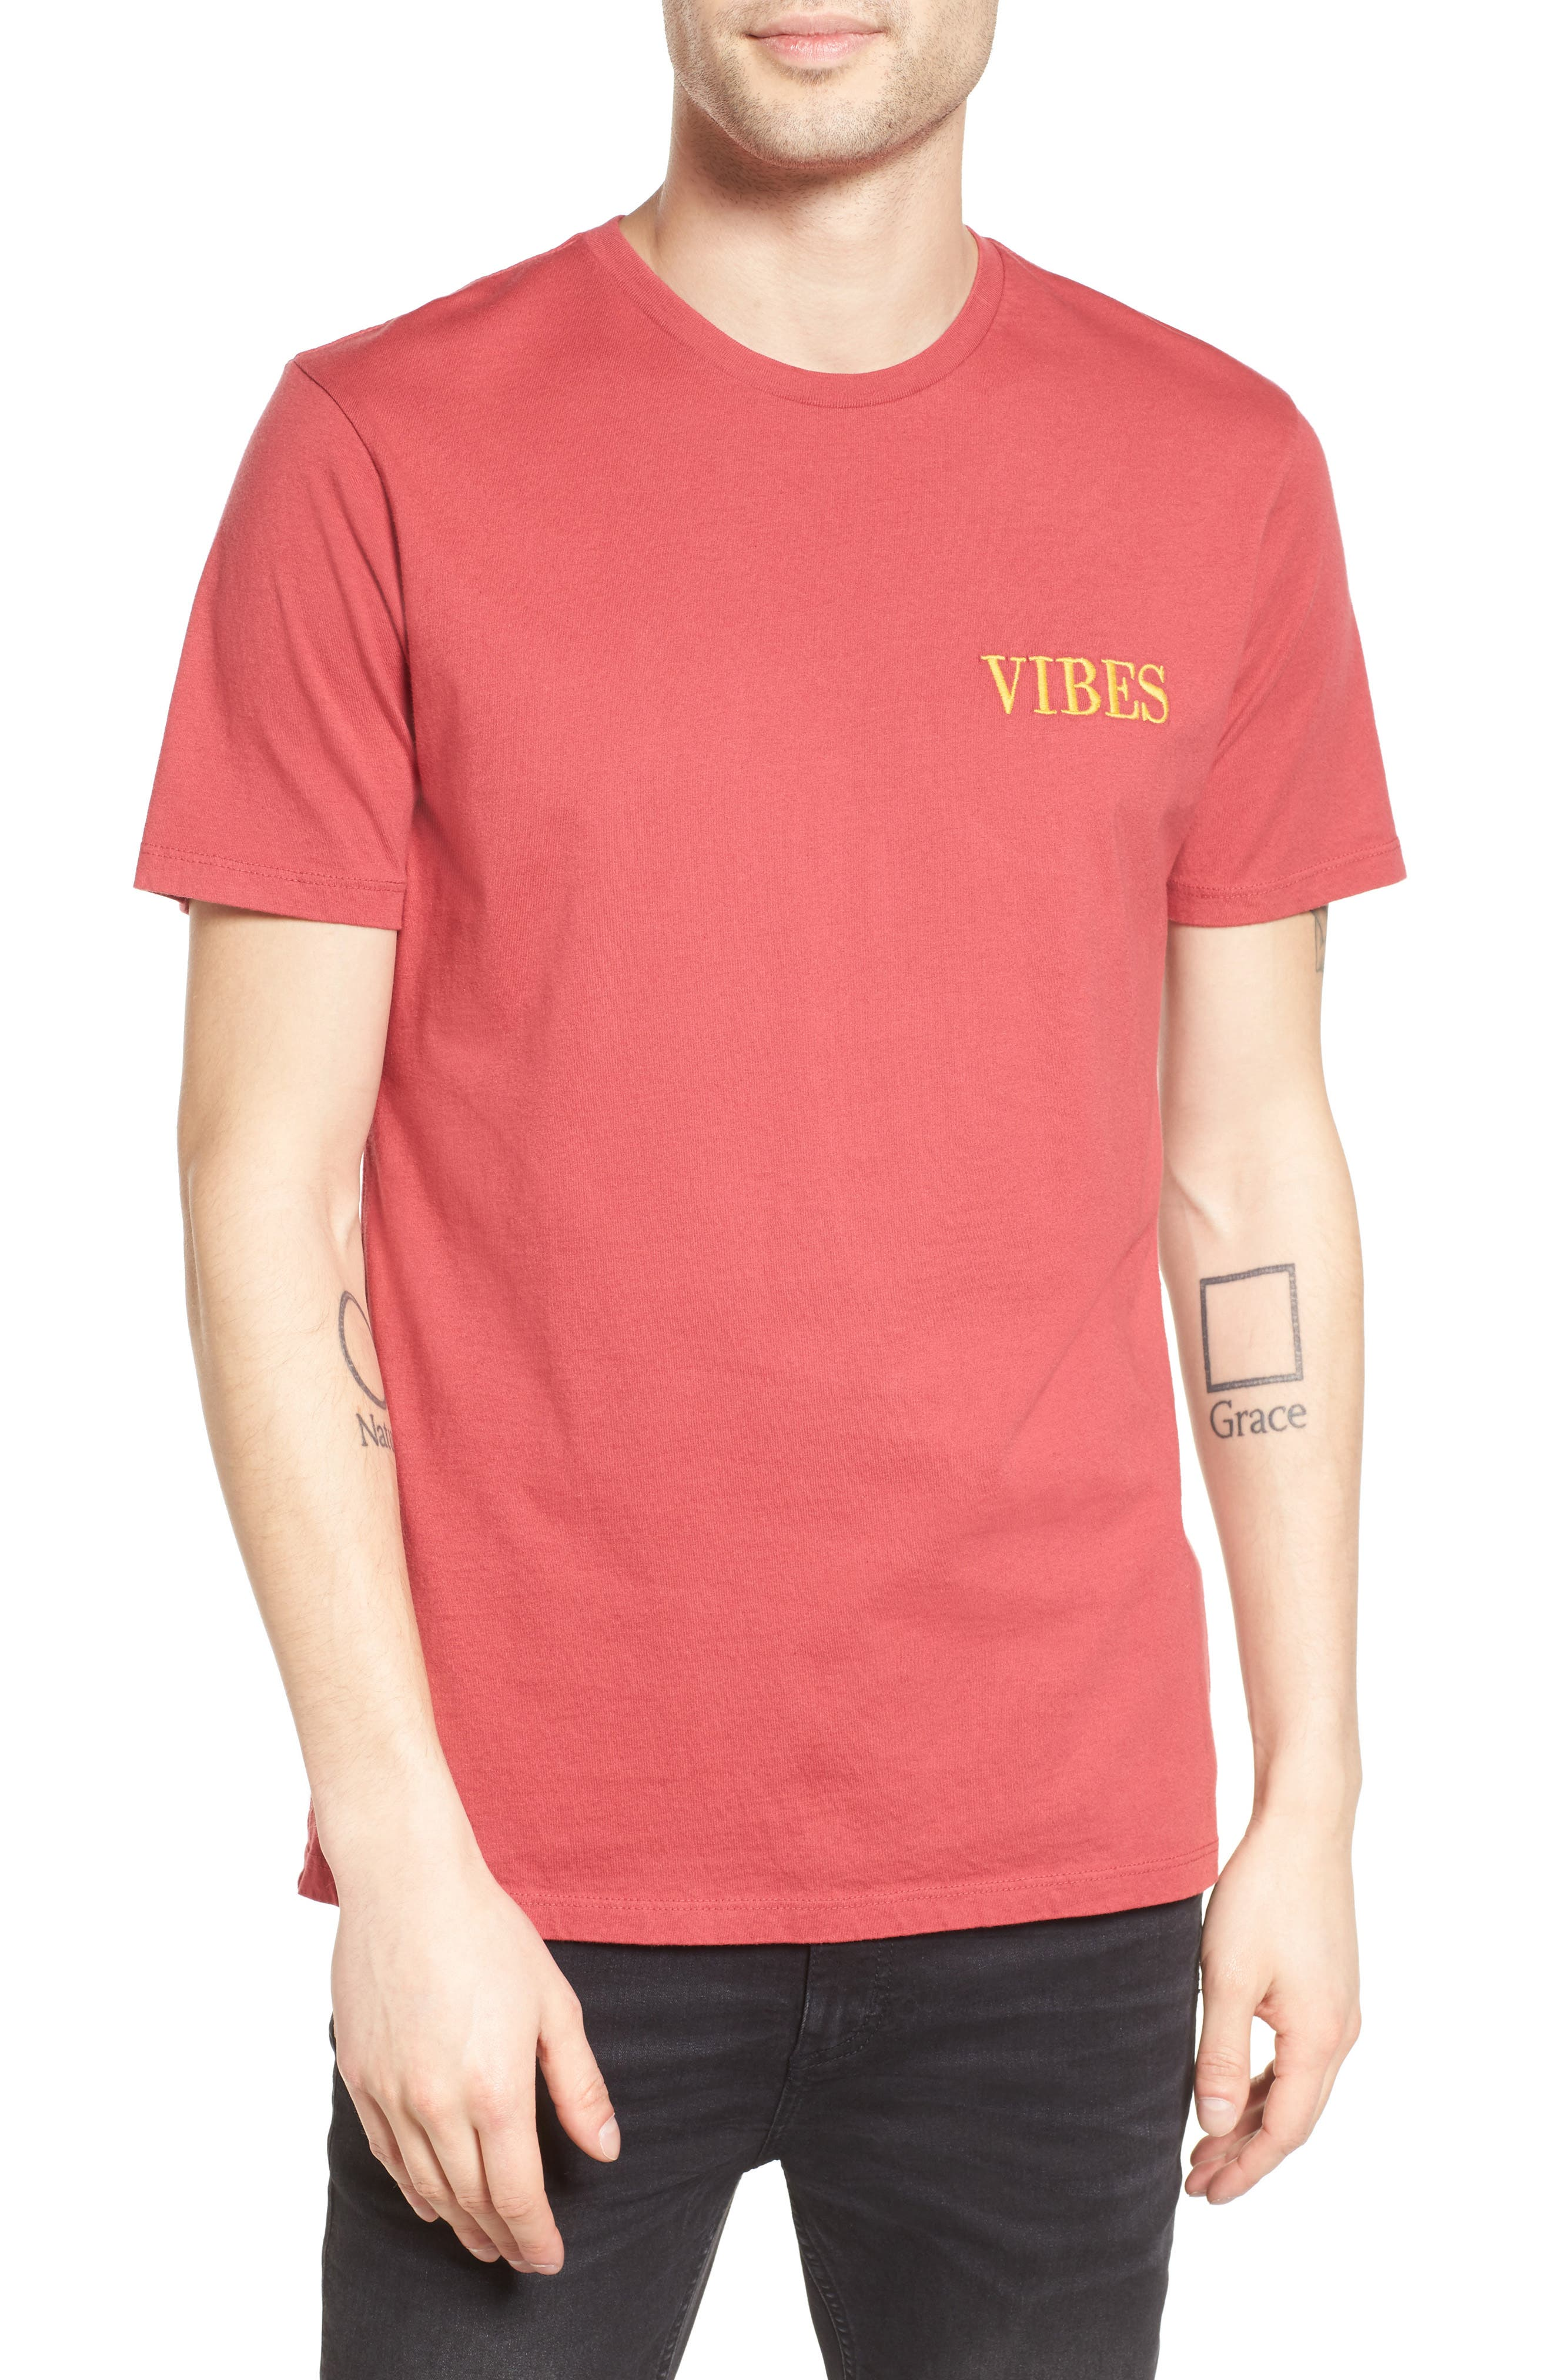 Vibes Embroidered T-Shirt,                             Main thumbnail 1, color,                             685